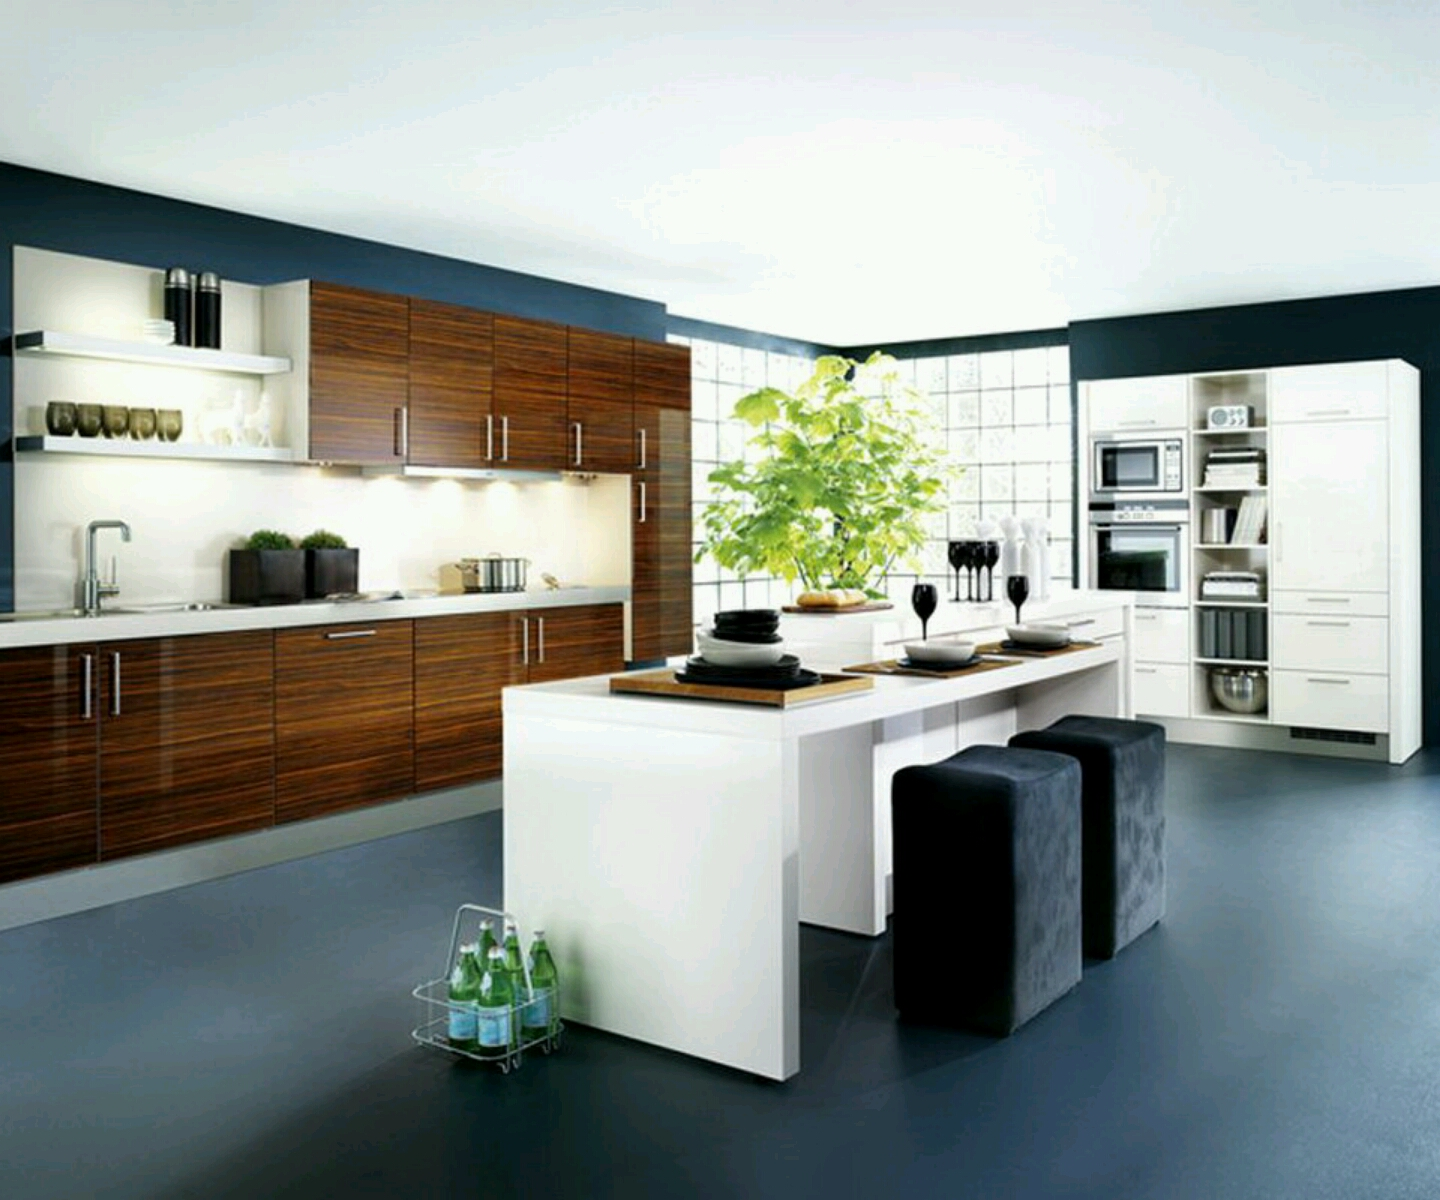 New home designs latest kitchen cabinets designs modern Kitchen furniture ideas